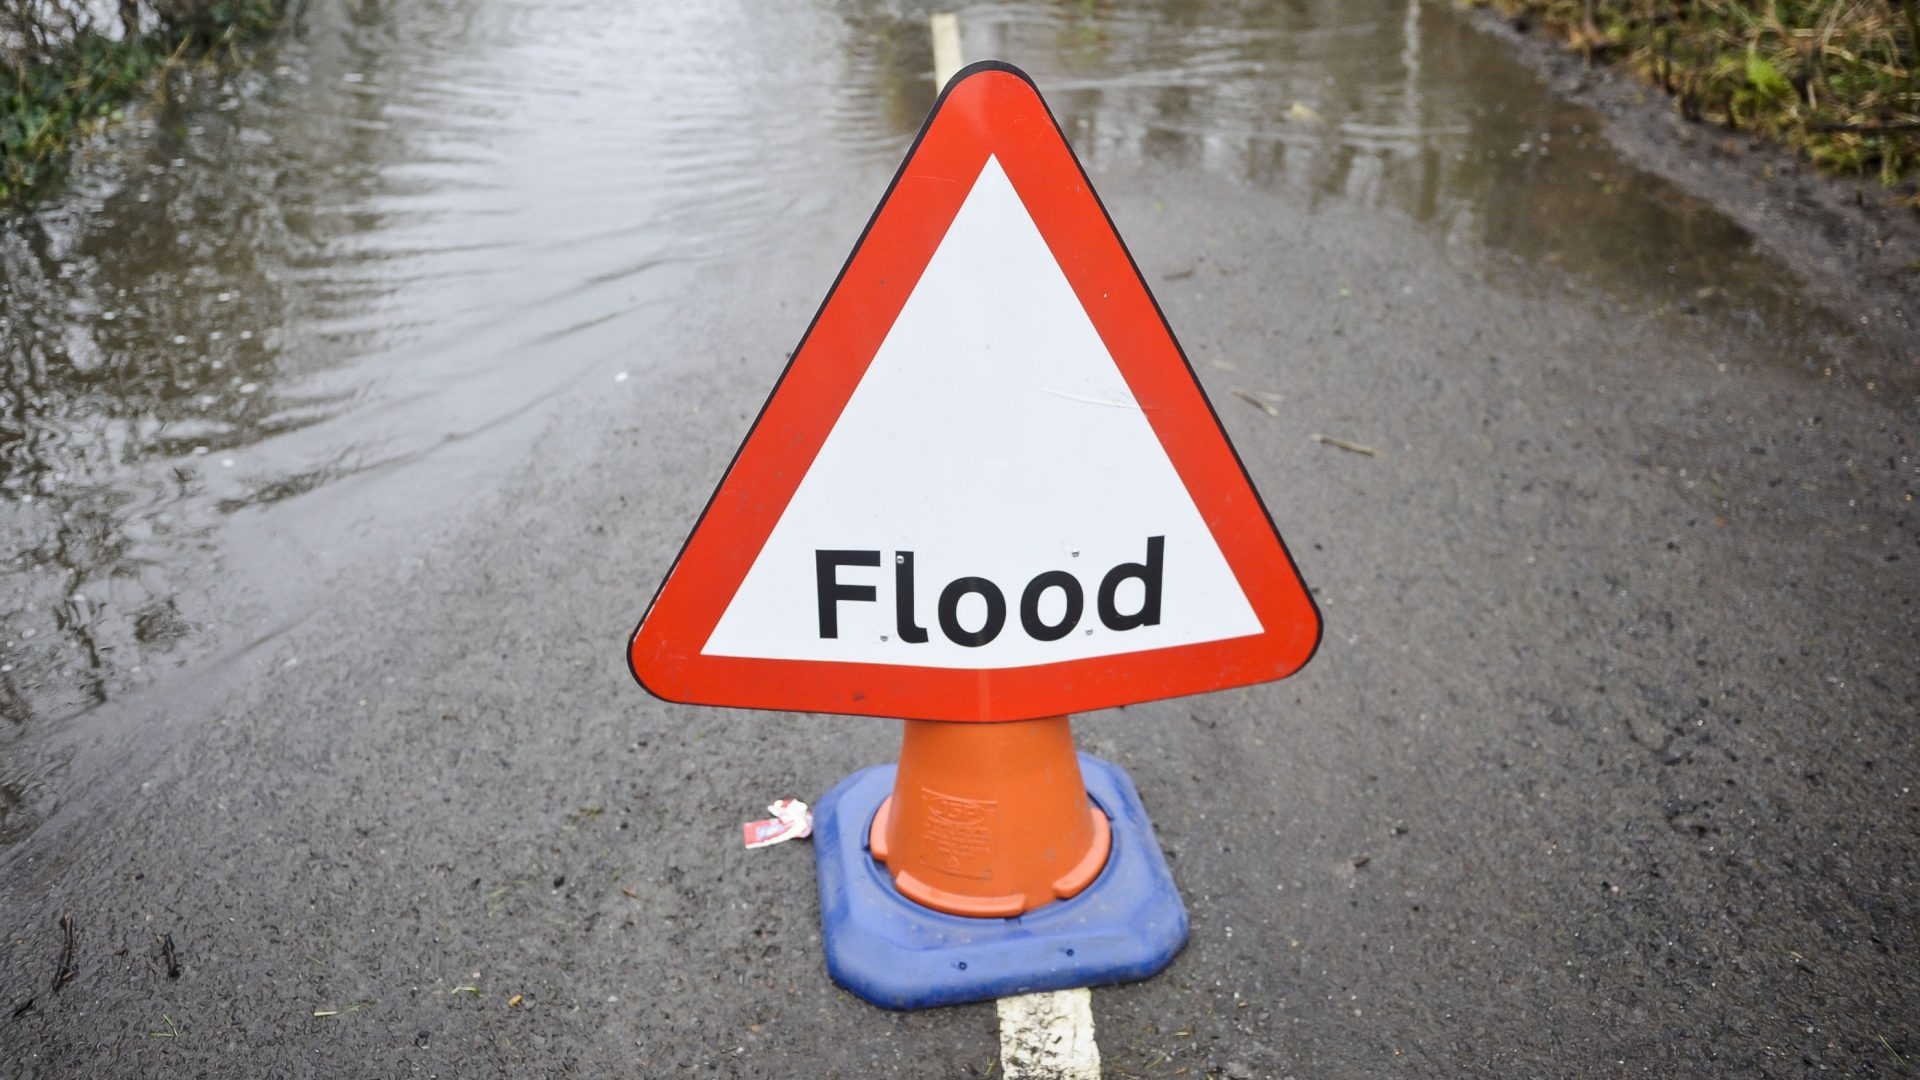 Advice issued to help prevent flooding